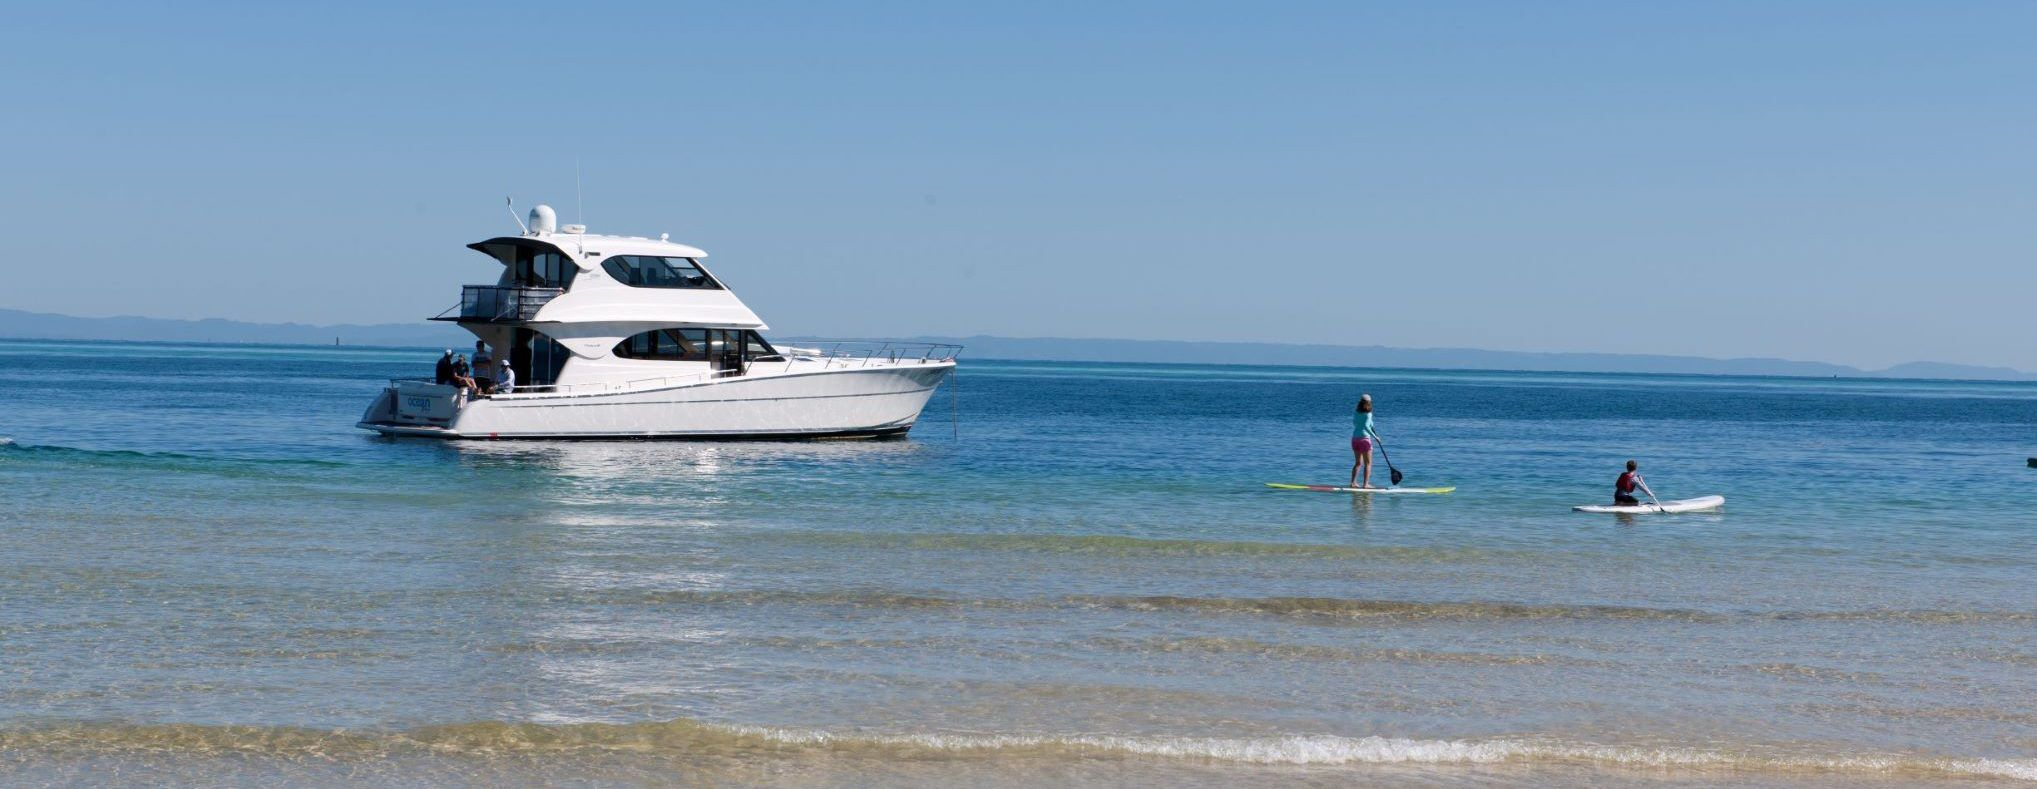 tangalooma padle baord weekend private charter luxury holiday